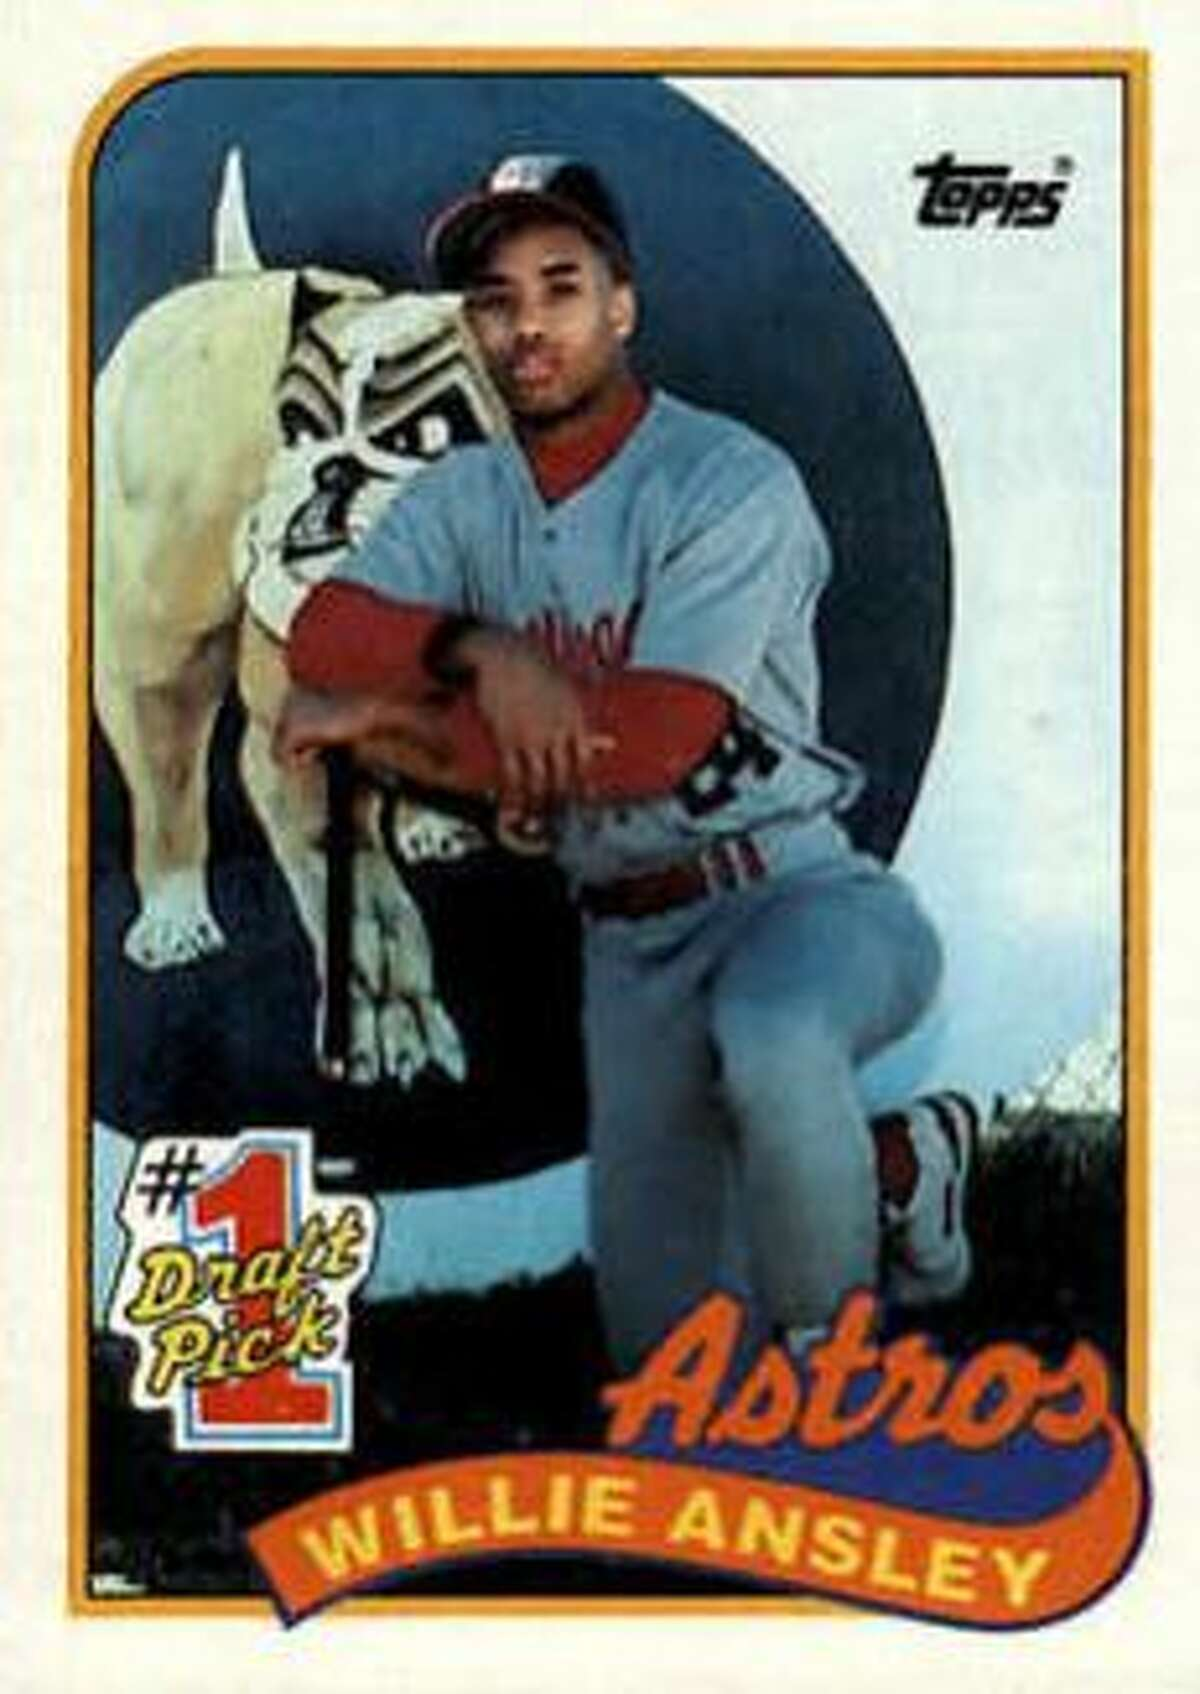 WORST: No. 8 Willie Ansley, outfield (7th overall, 1988) A year after getting Craig Biggio in the first round, the Astros grabbed Ansley out of Plainview High School near the the top of the first round, and he never made the big leagues. In five minor league seasons, Ansley made it to Class AAA before being released and toiling in independent baseball.